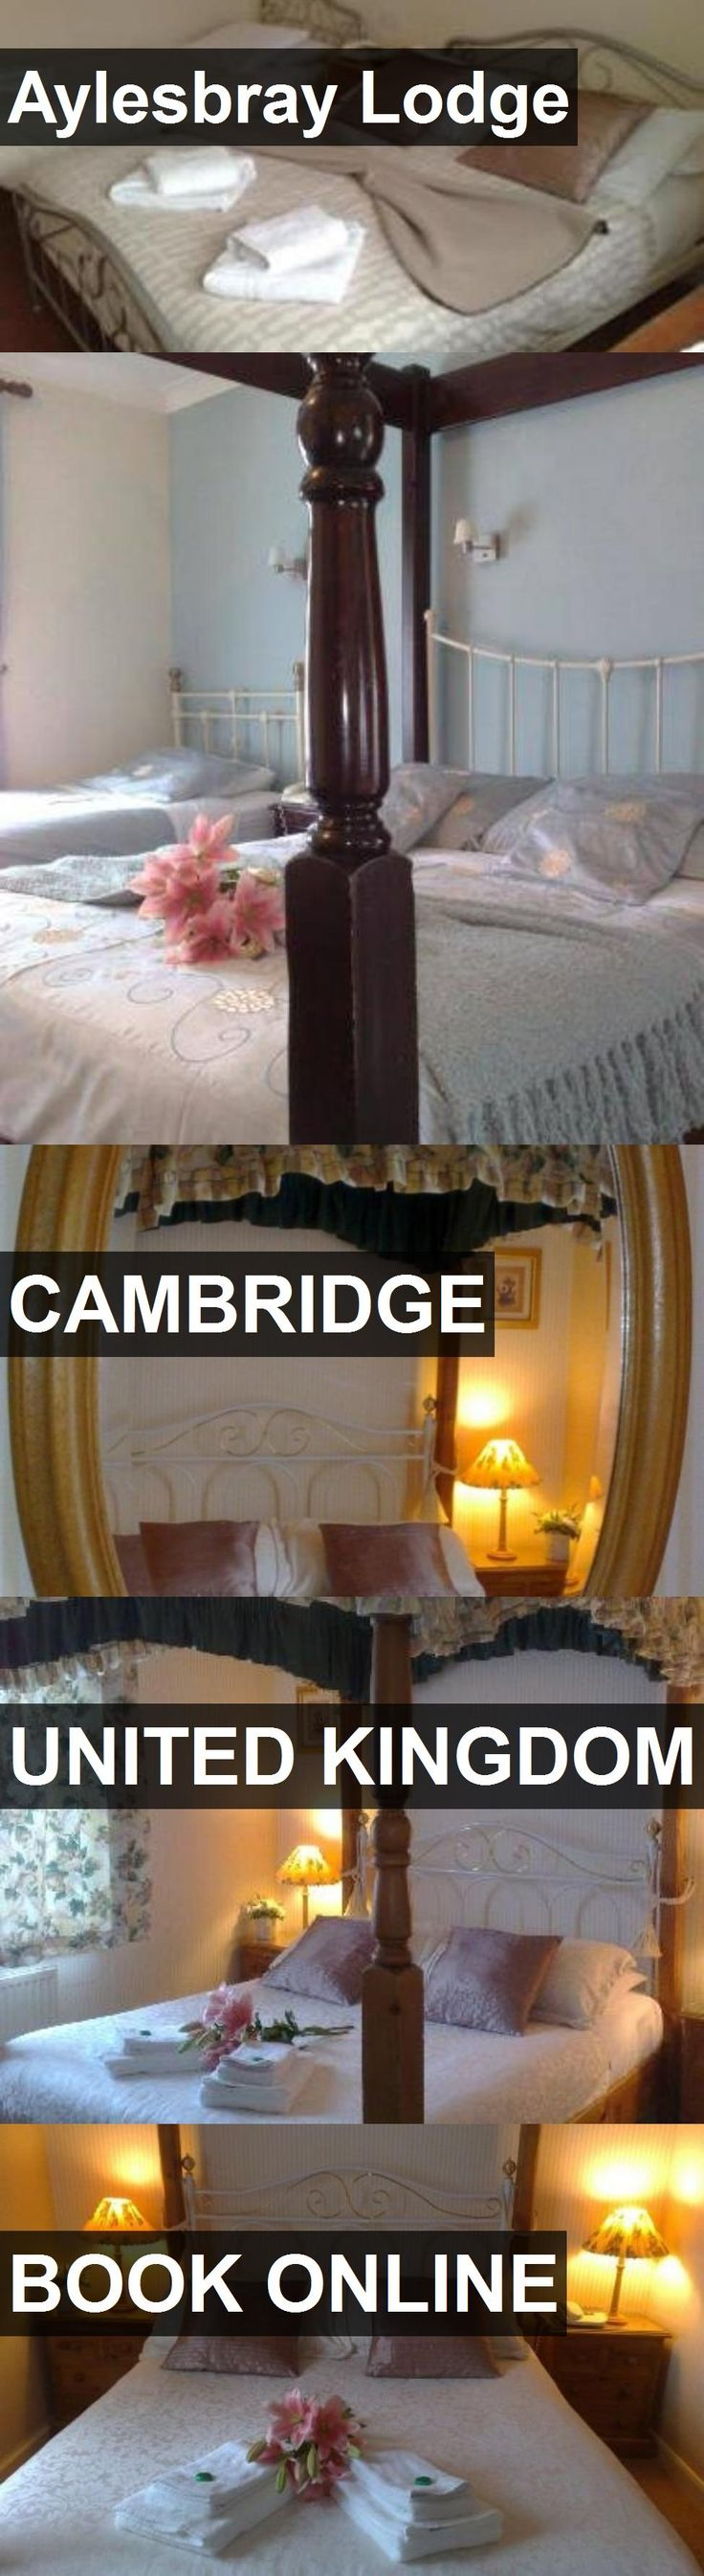 Hotel Aylesbray Lodge in Cambridge, United Kingdom. For more information, photos, reviews and best prices please follow the link. #UnitedKingdom #Cambridge #travel #vacation #hotel